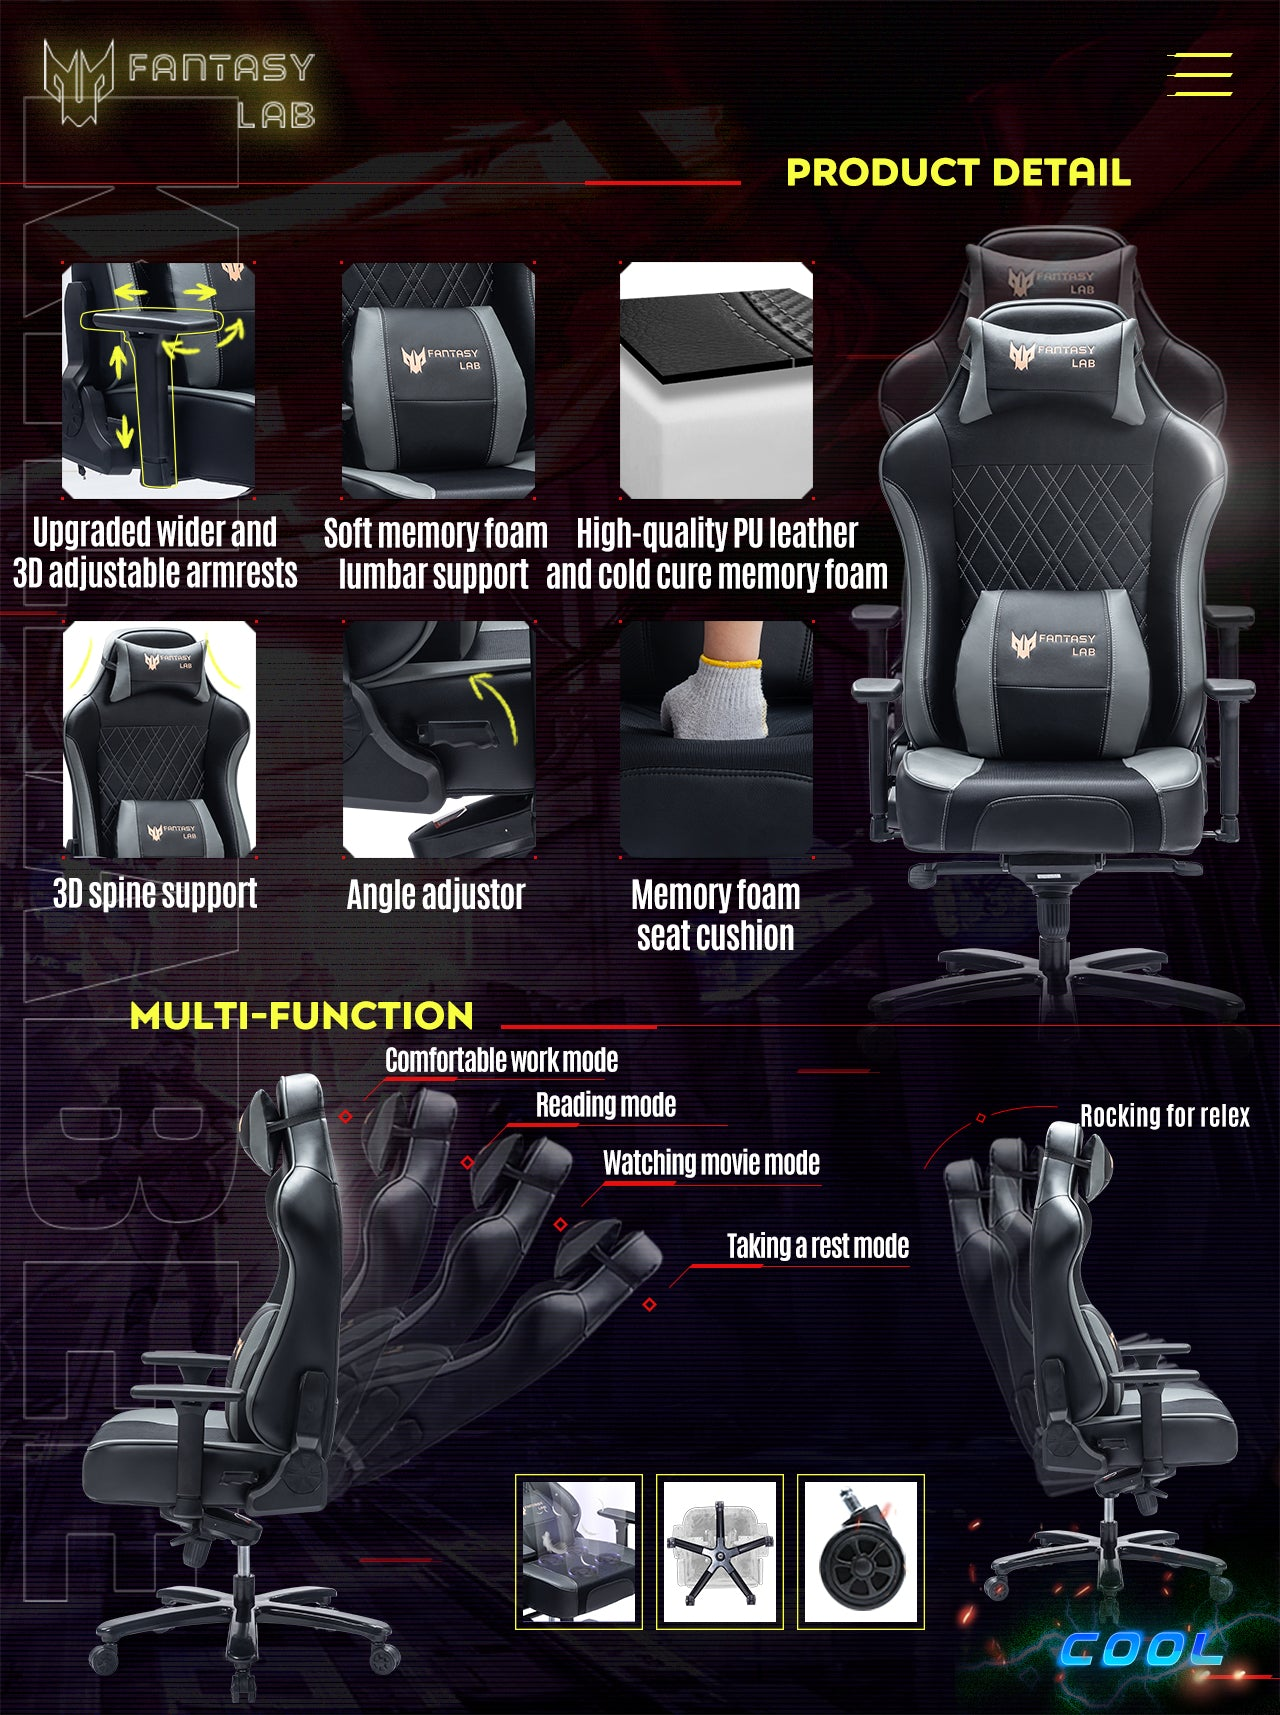 FANTASYLAB Cool Series Racing Style Big and Tall Gray Gaming Chair Features